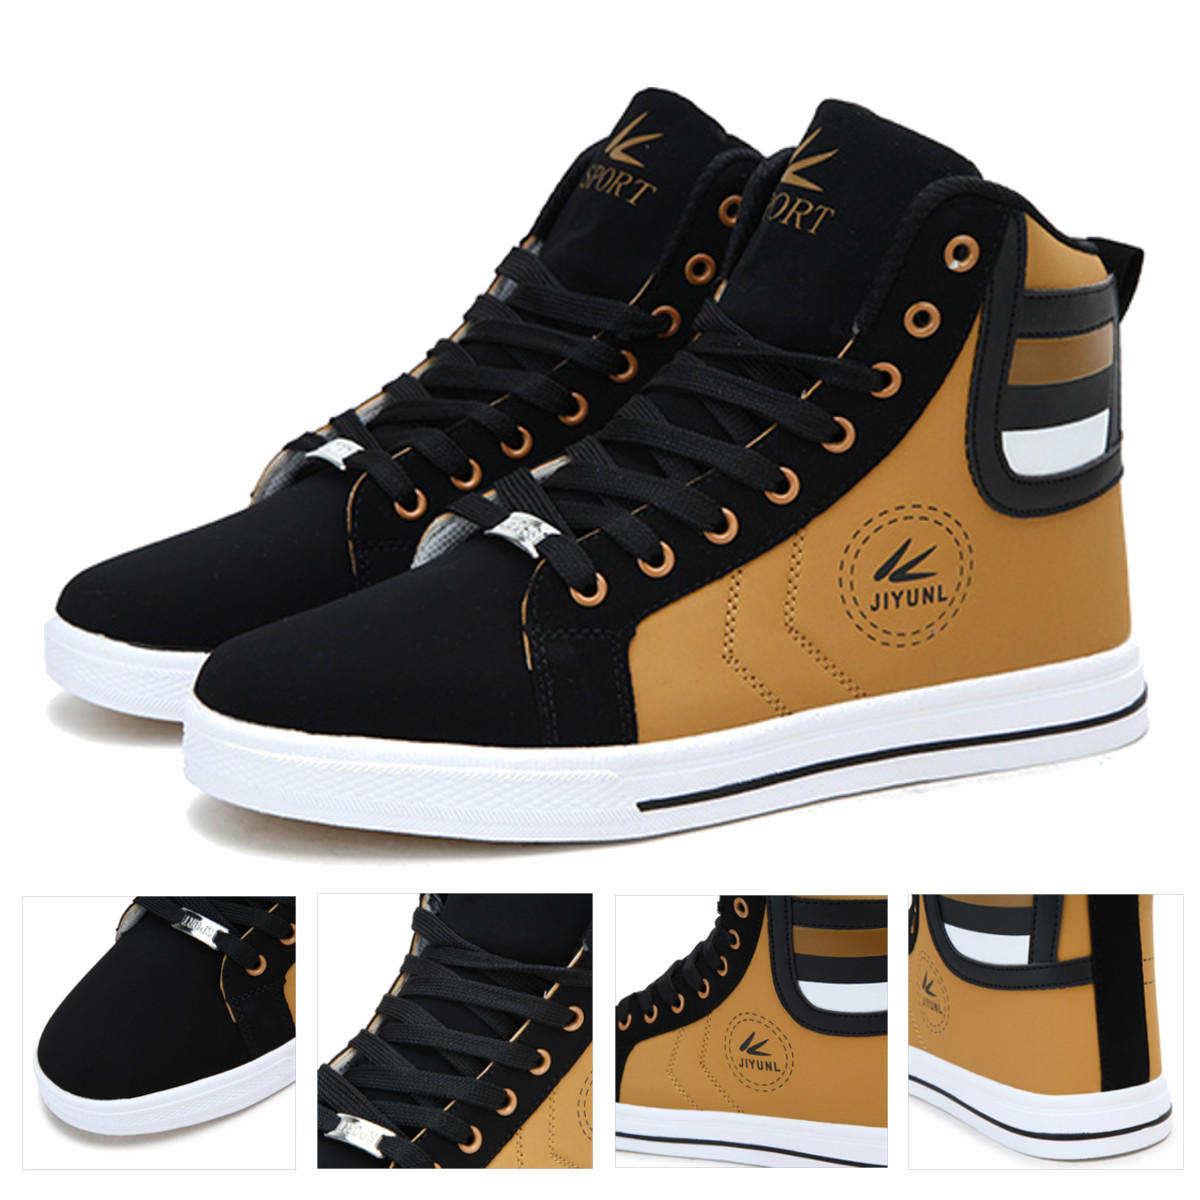 28f3b0df1b02e Men Round Toe High Top Sneakers Casual Leisure Lace Up Skateboard Shoes